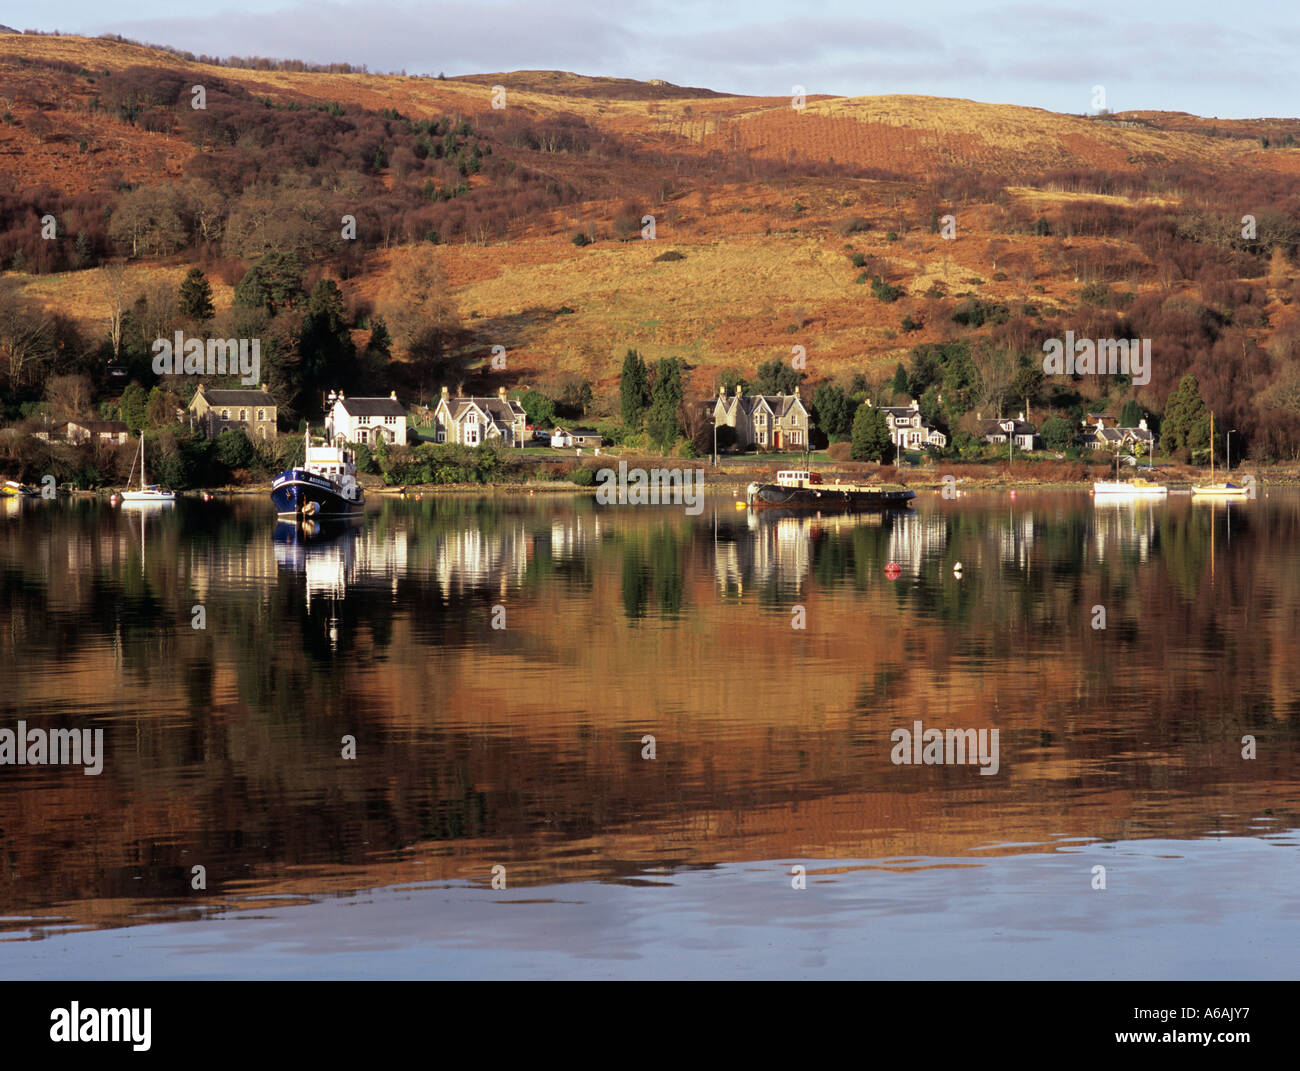 HILLSIDE and VILLAGE HOUSES beside tidal Gare Loch reflected in calm water. Garelochhead Argyll Bute Scotland UK - Stock Image